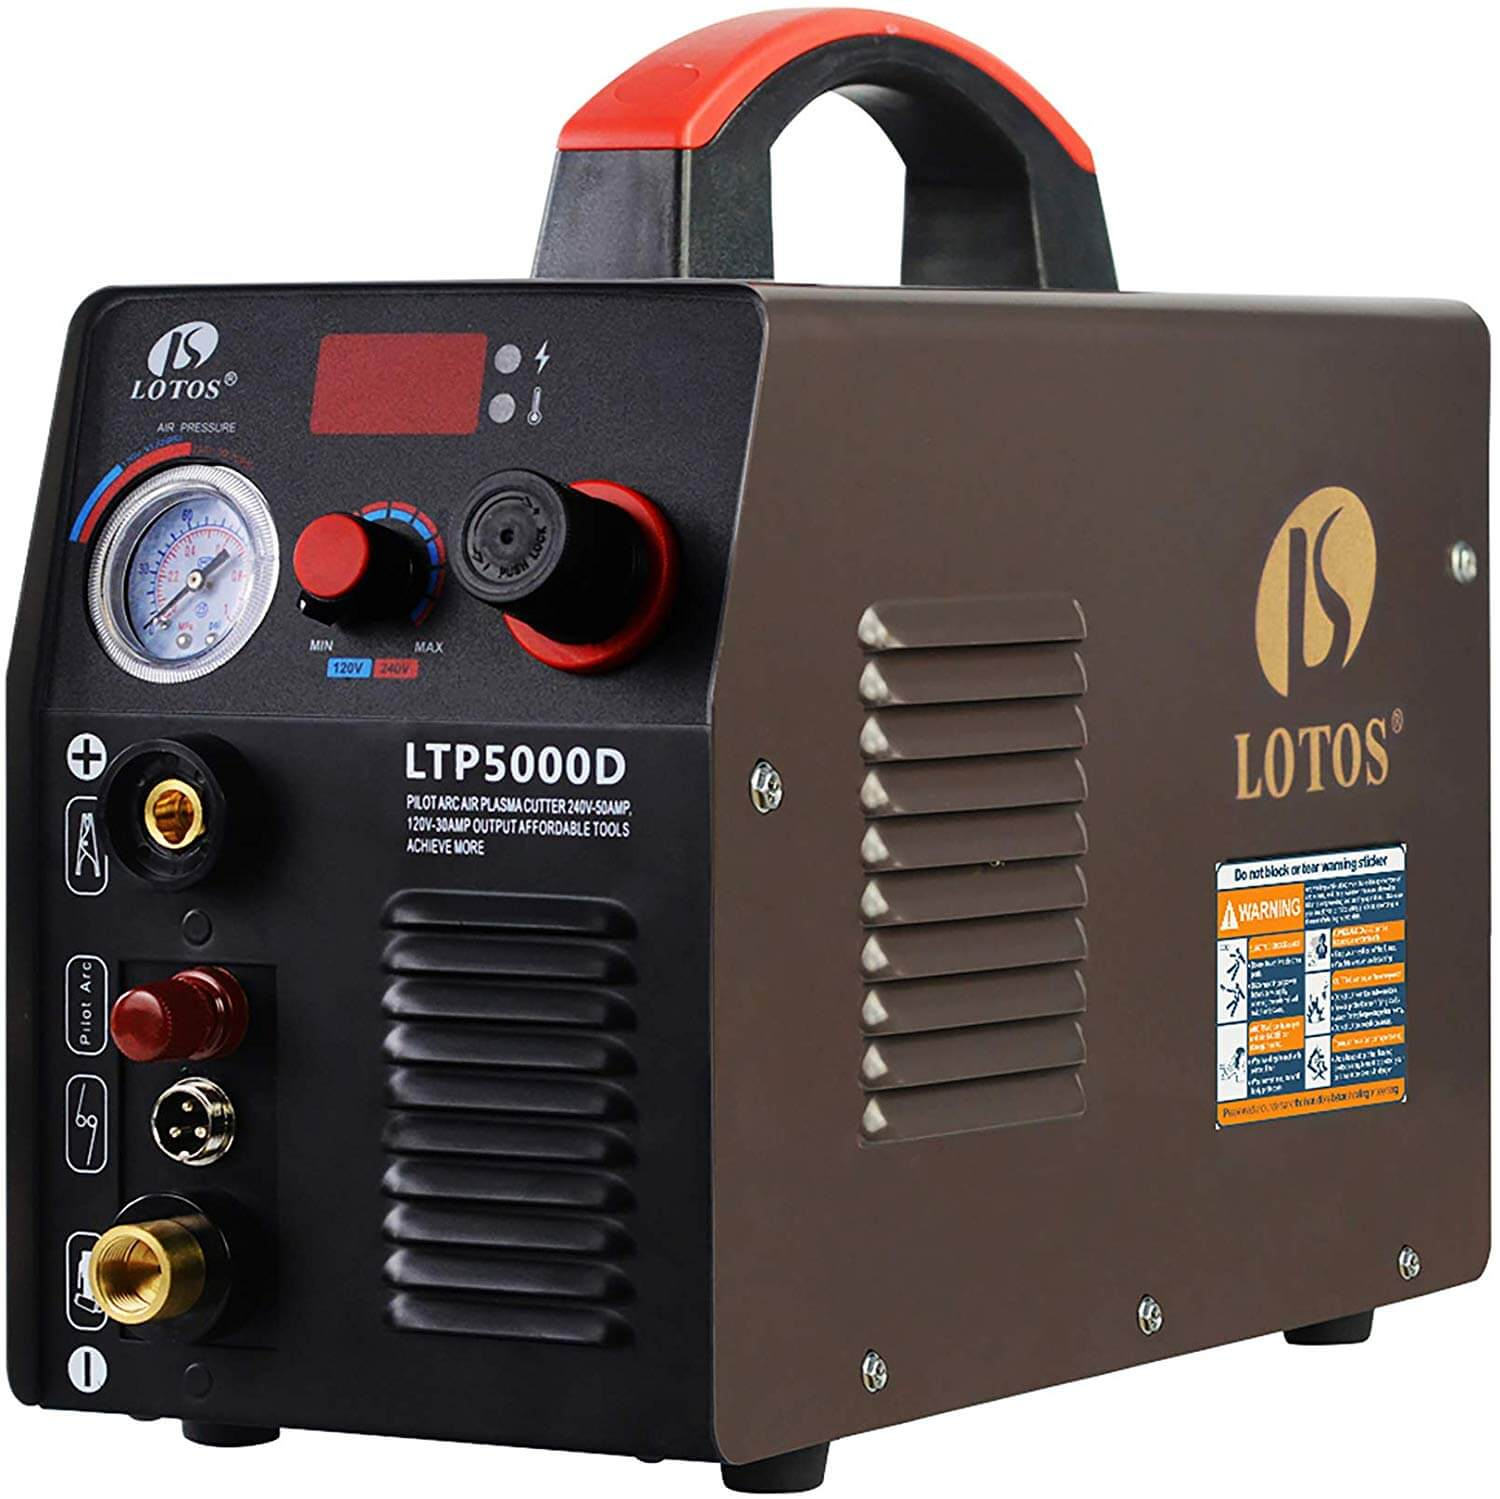 Lotos LTP5000D Plasma Cutter Review